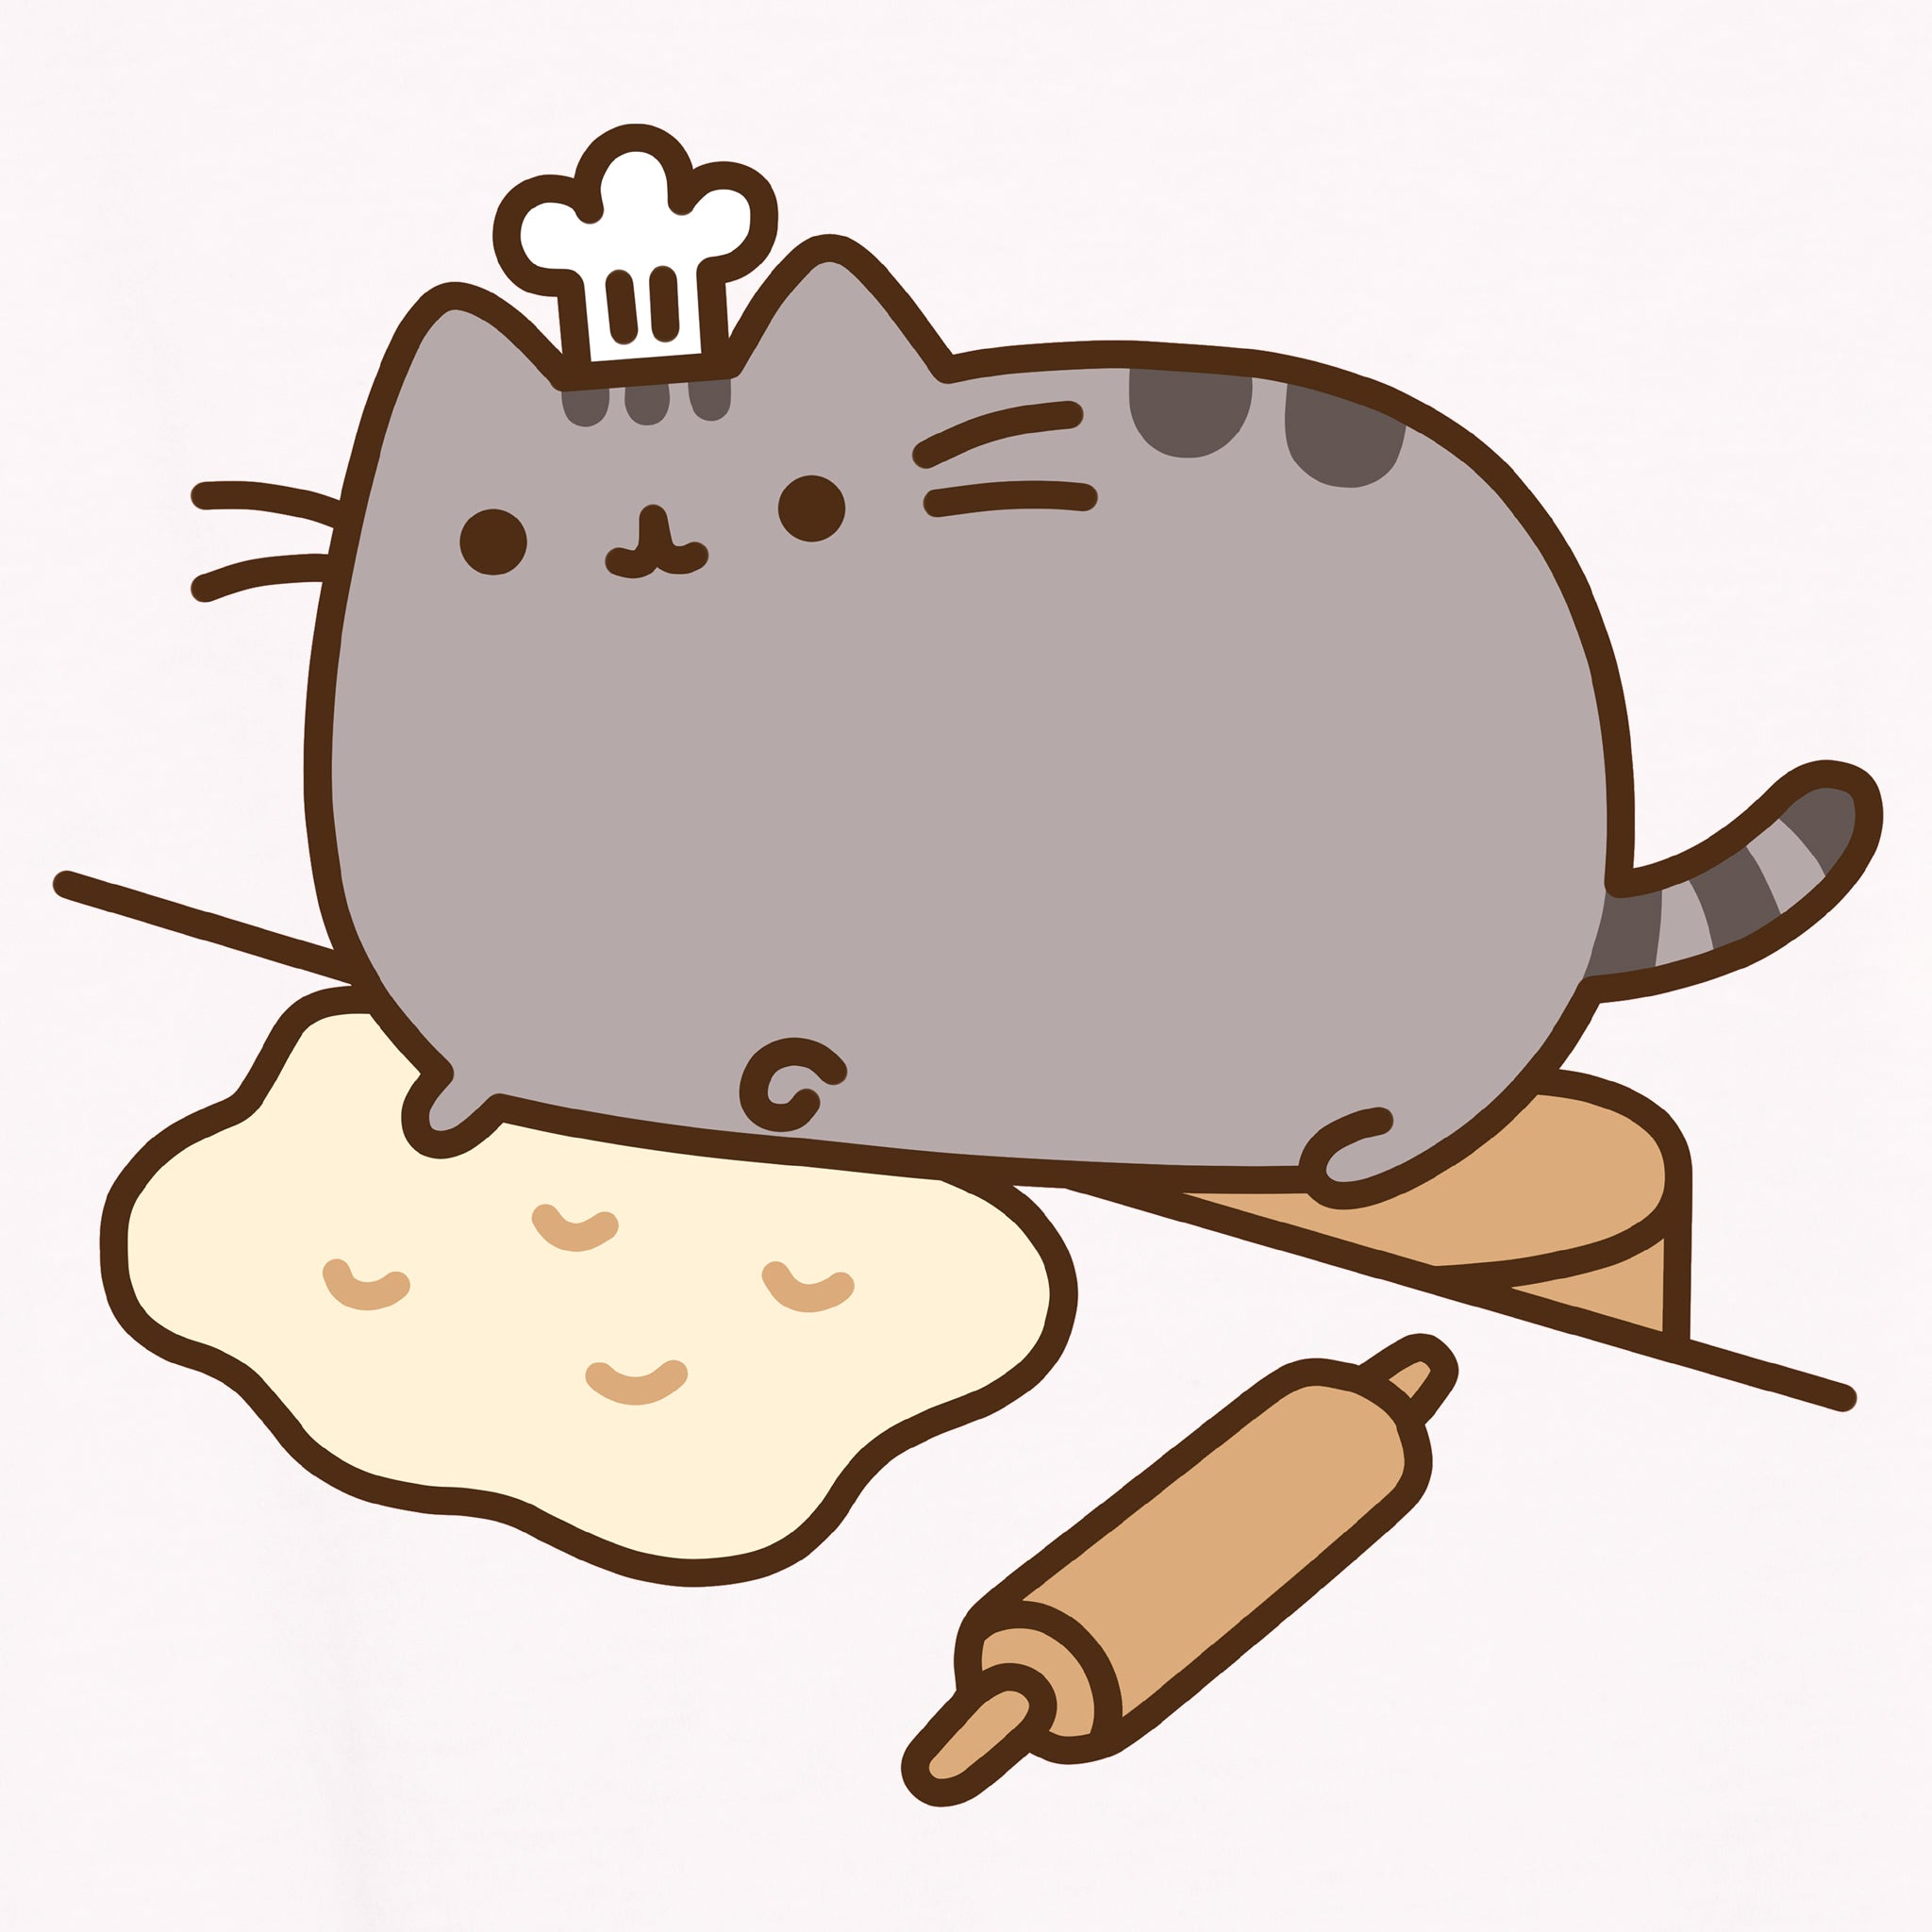 pusheen baking apparel t-shirt graphic shirt baker cute cat culturefly